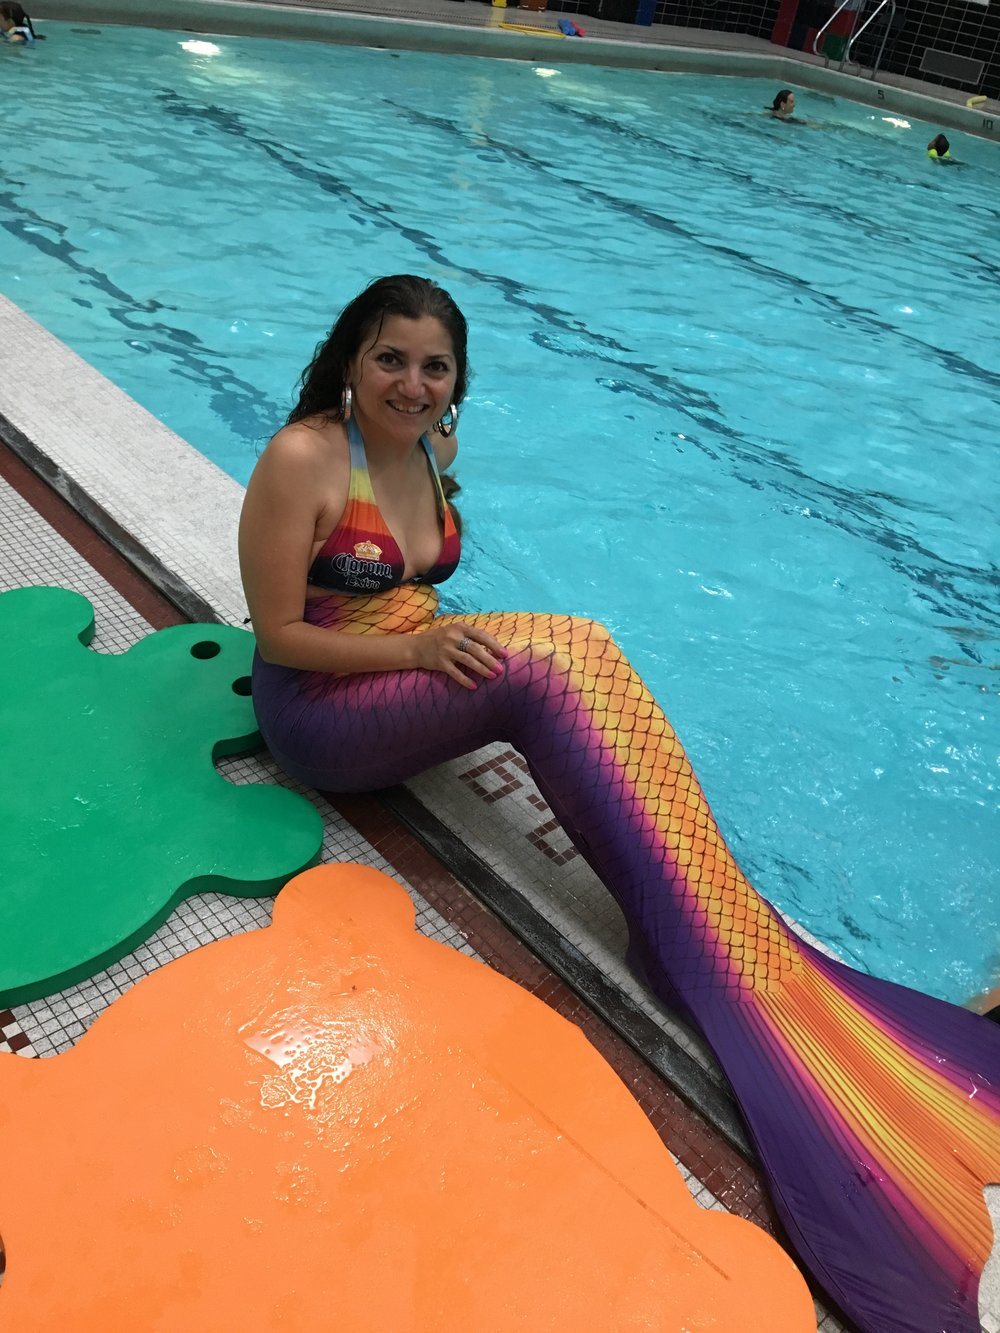 Mermaid Me!